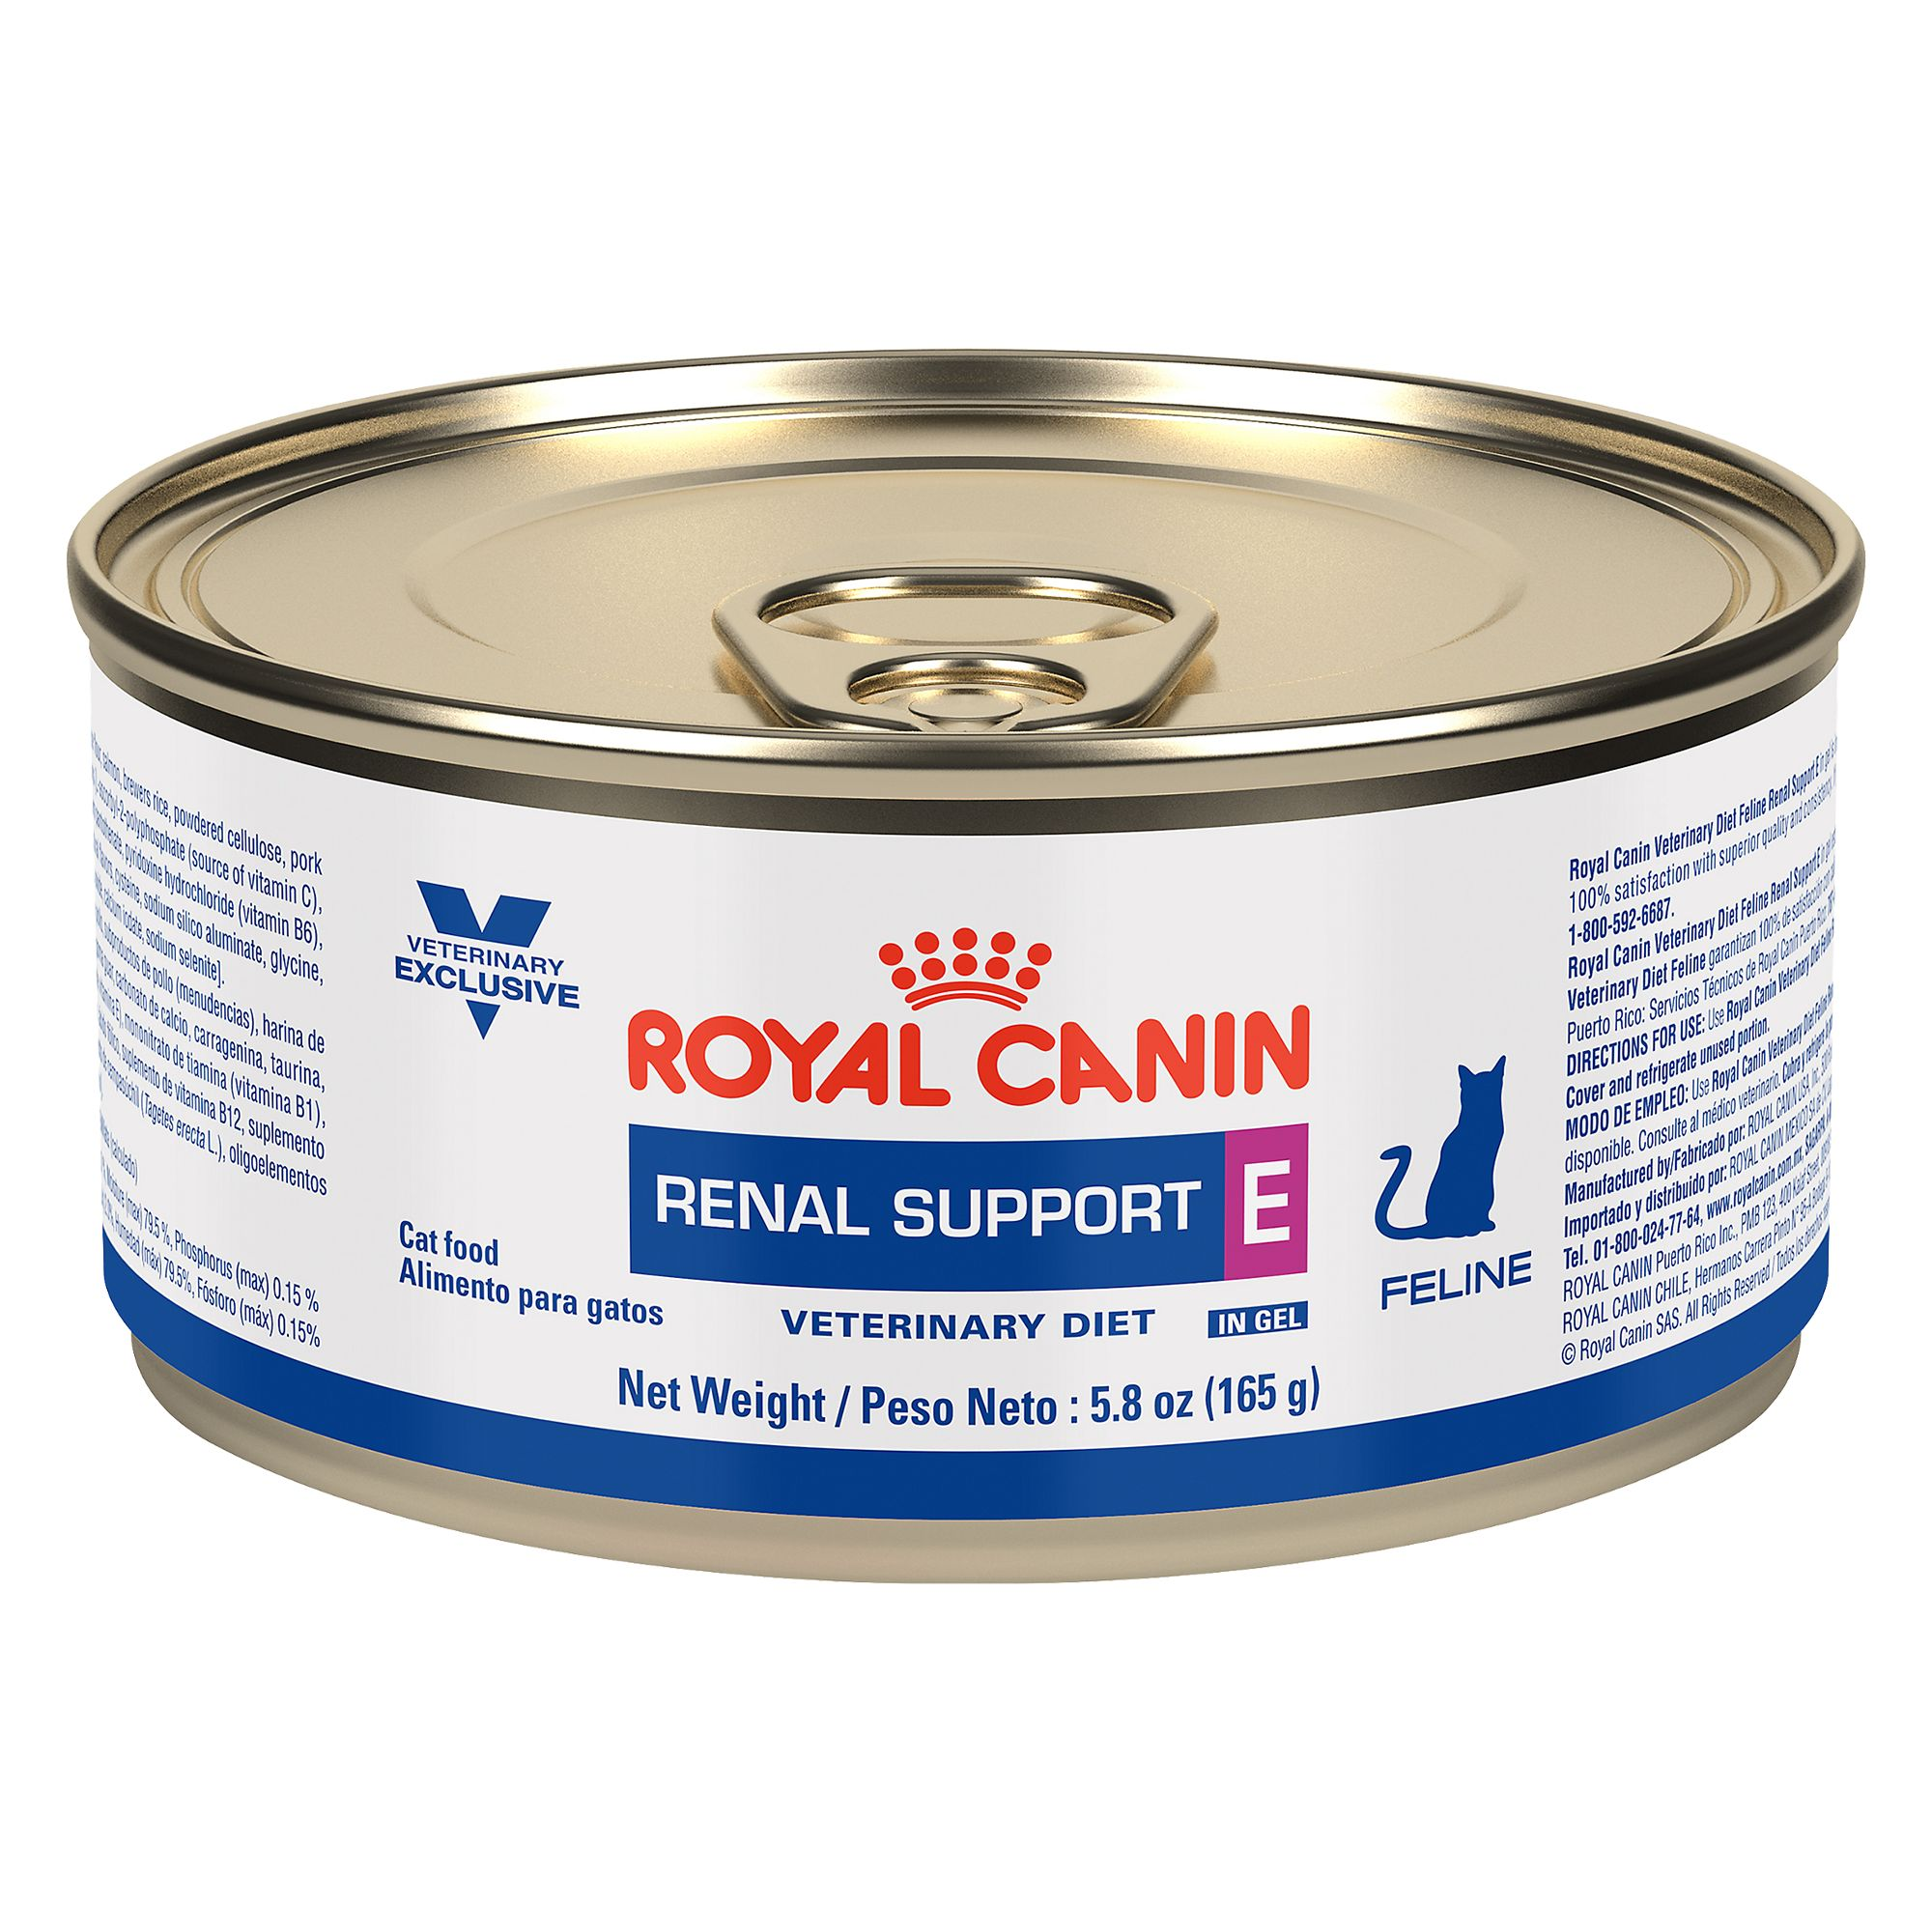 Duke Canin Veterinary Exclusive Diet Renal Support E Adult Cat Food size: 5.8 Oz, Wet